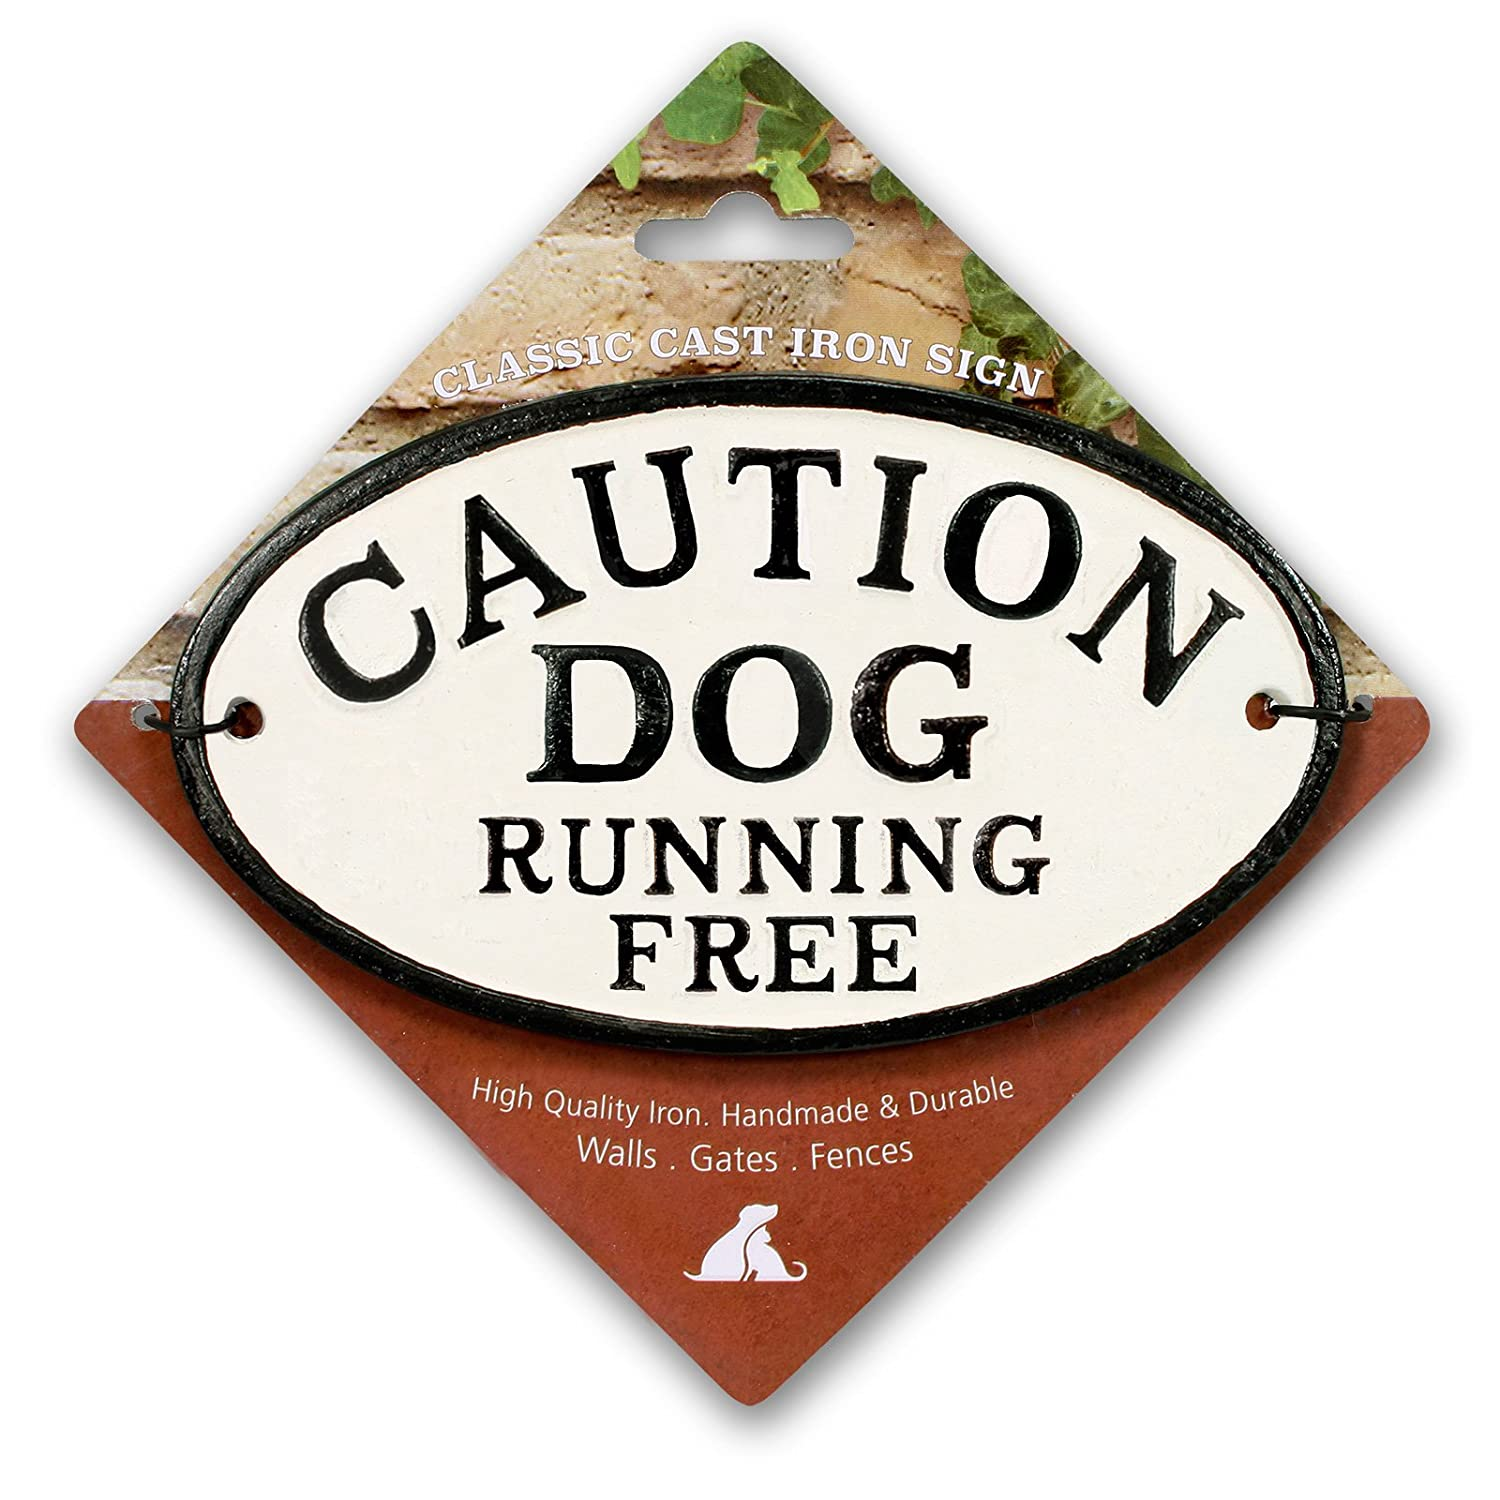 Magnet & Steel Caution Dog Running Free Cast Iron Oval Sign 6769